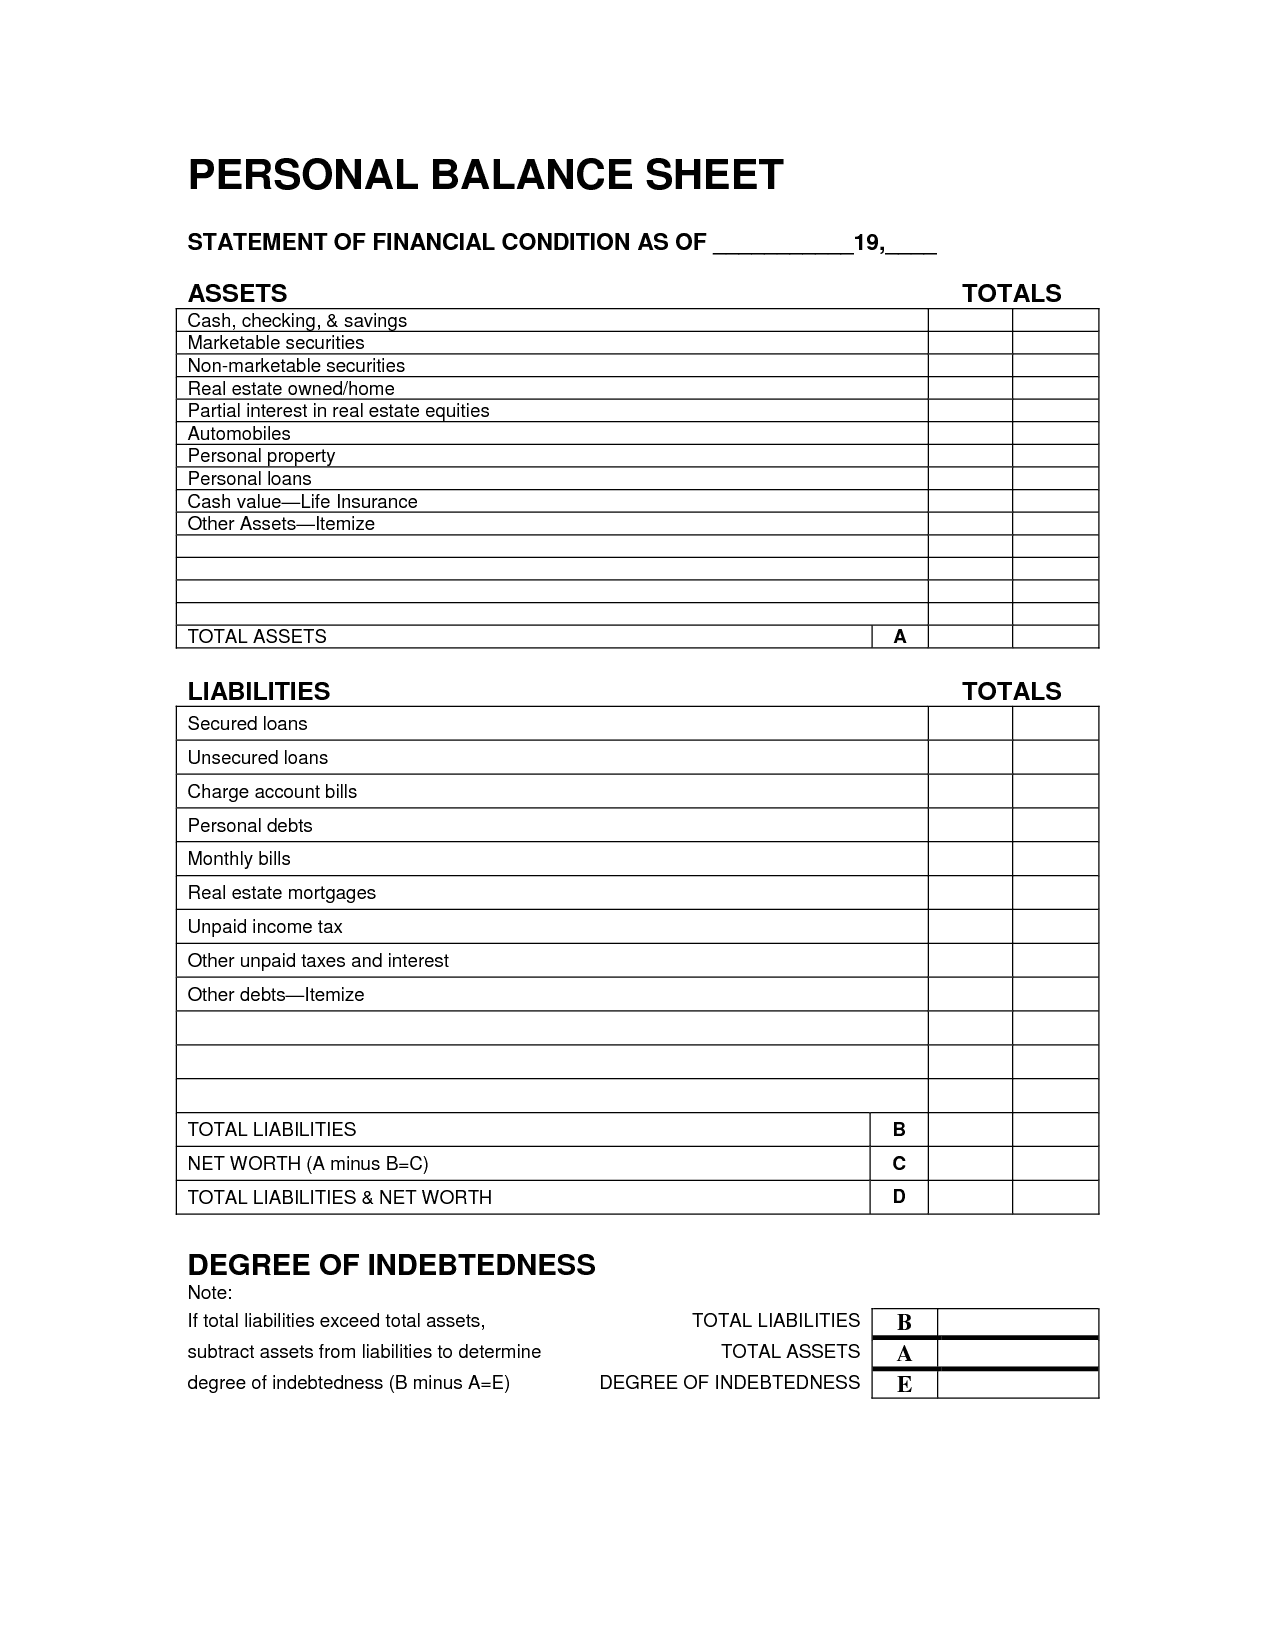 Free Accounting Forms Accounting Forms Balance Sheet Spreadsheet Templates for Busines Spreadsheet Templates for Busines Accounting Forms Templates